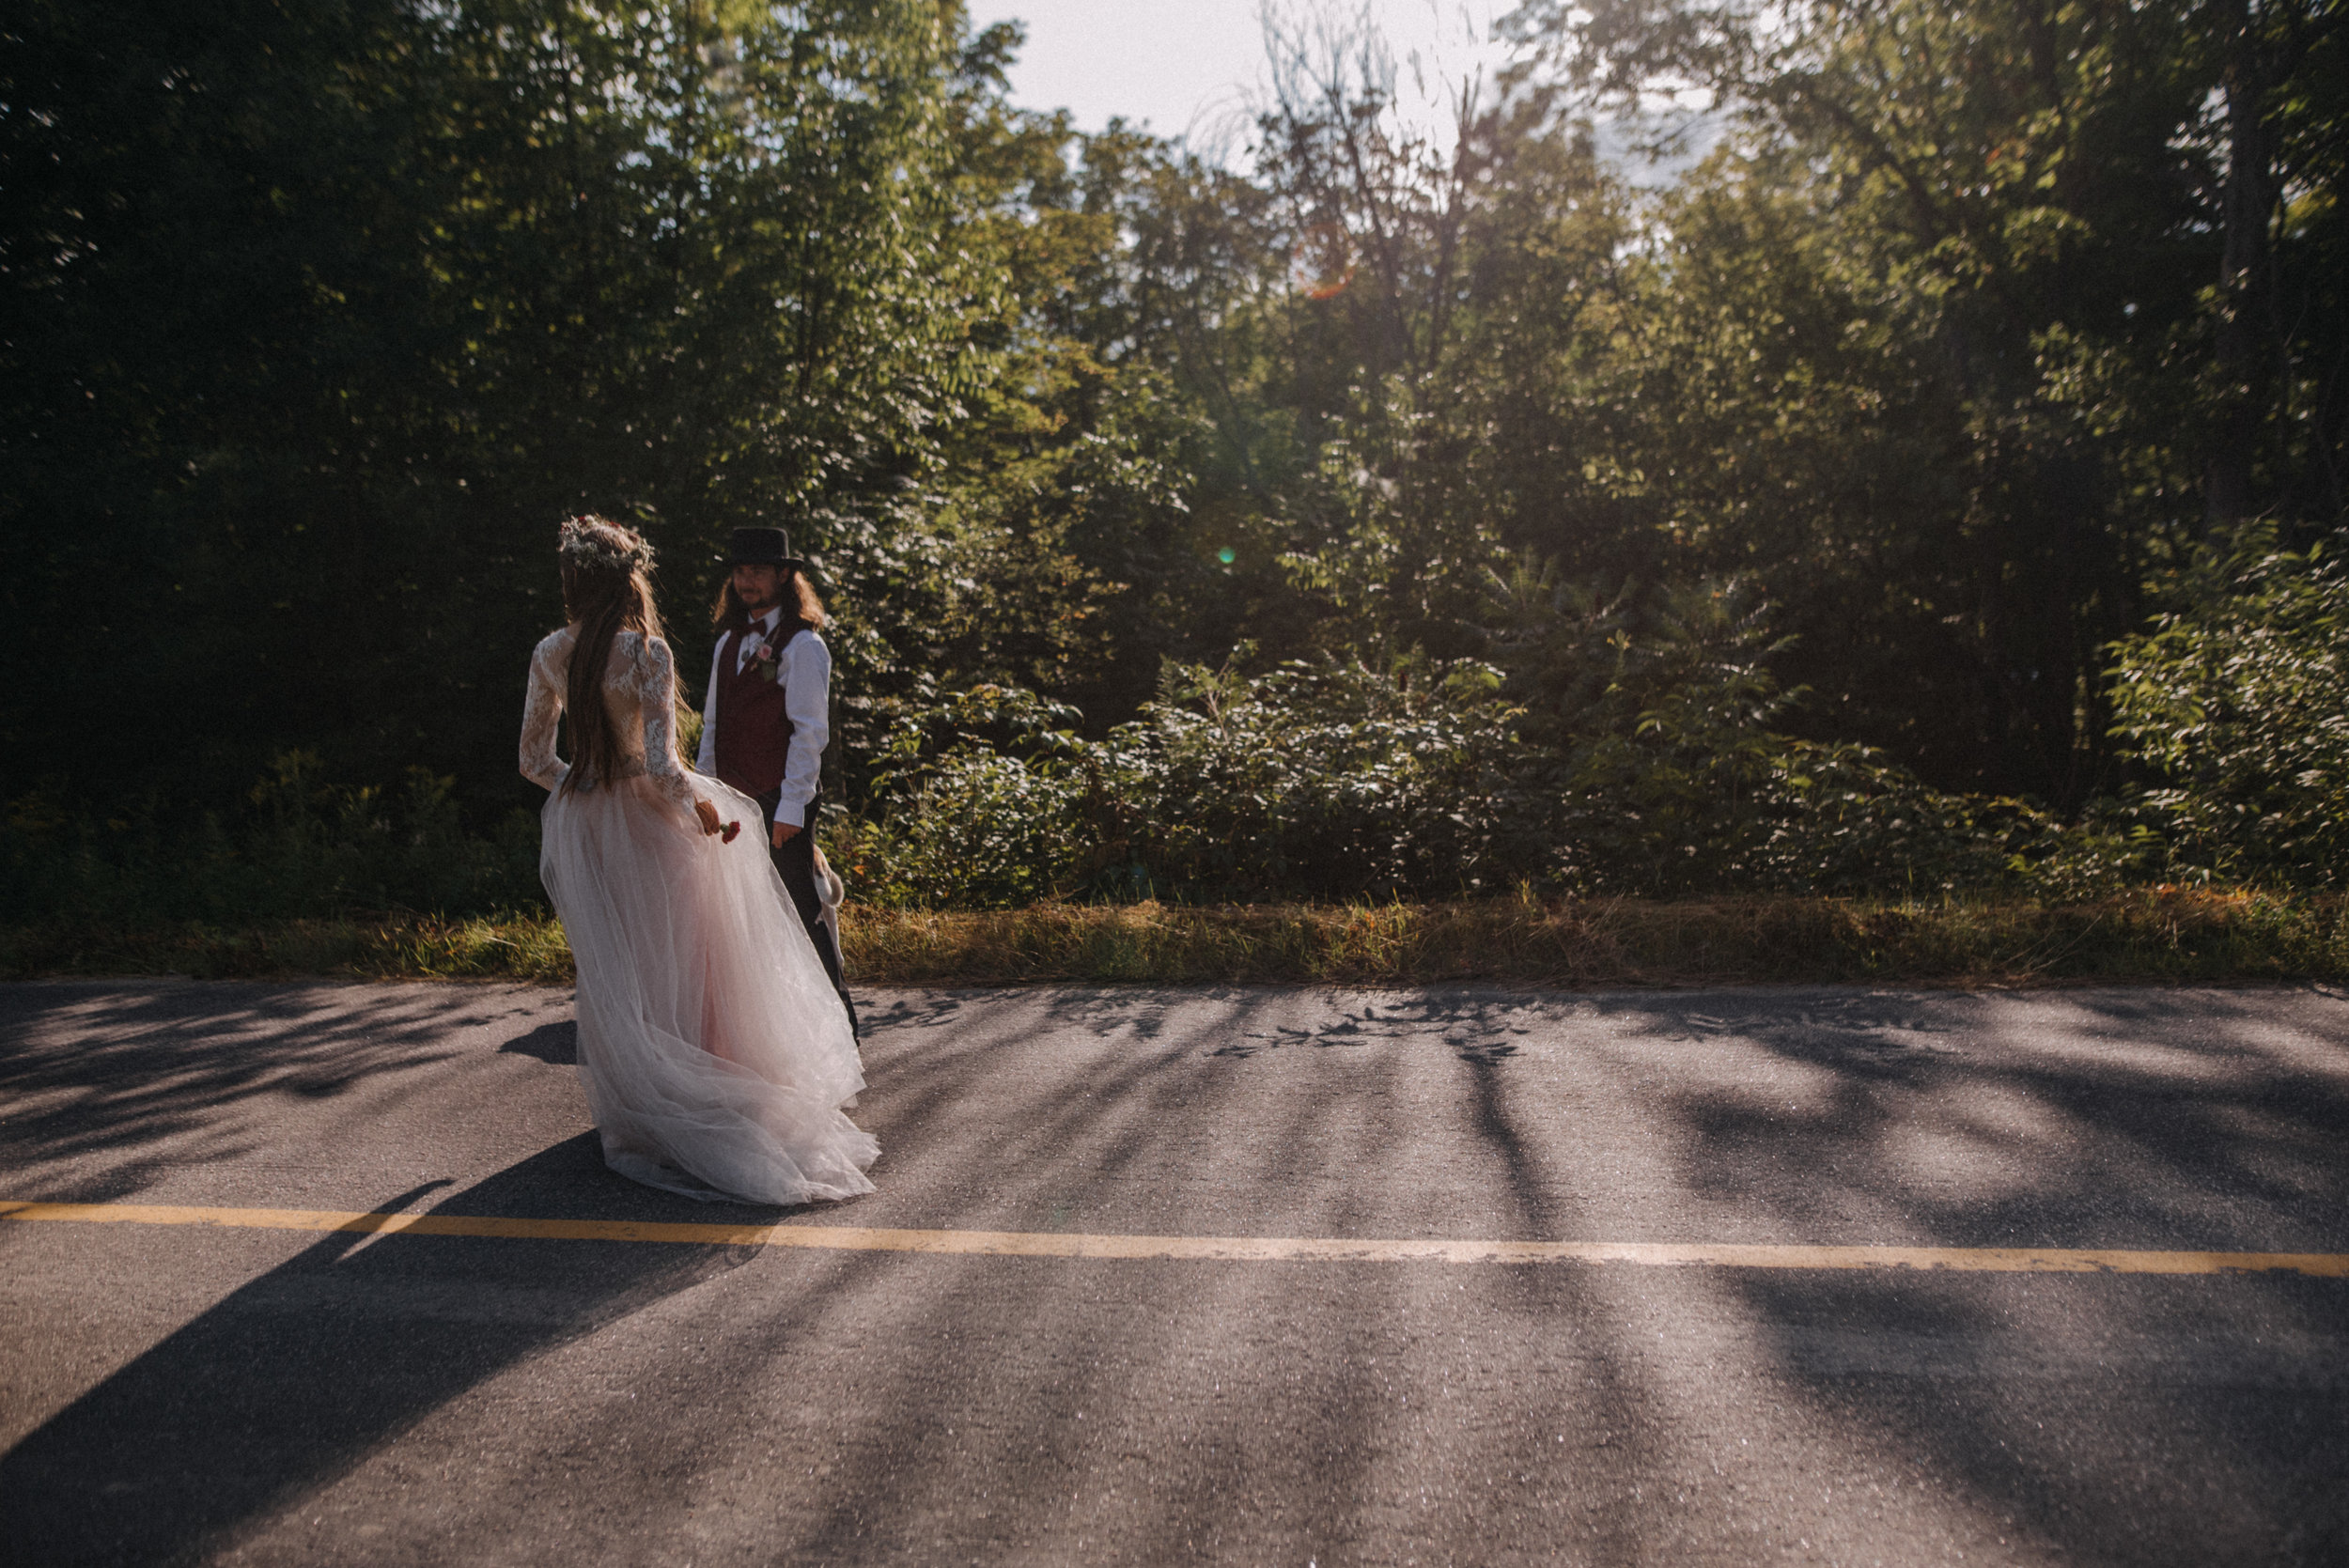 ottawa_wedding_photographer_gatineau_photographe_mariage_documentary_candid_photojournalist_natural_raw_boho_wedding_backyard (38).JPG